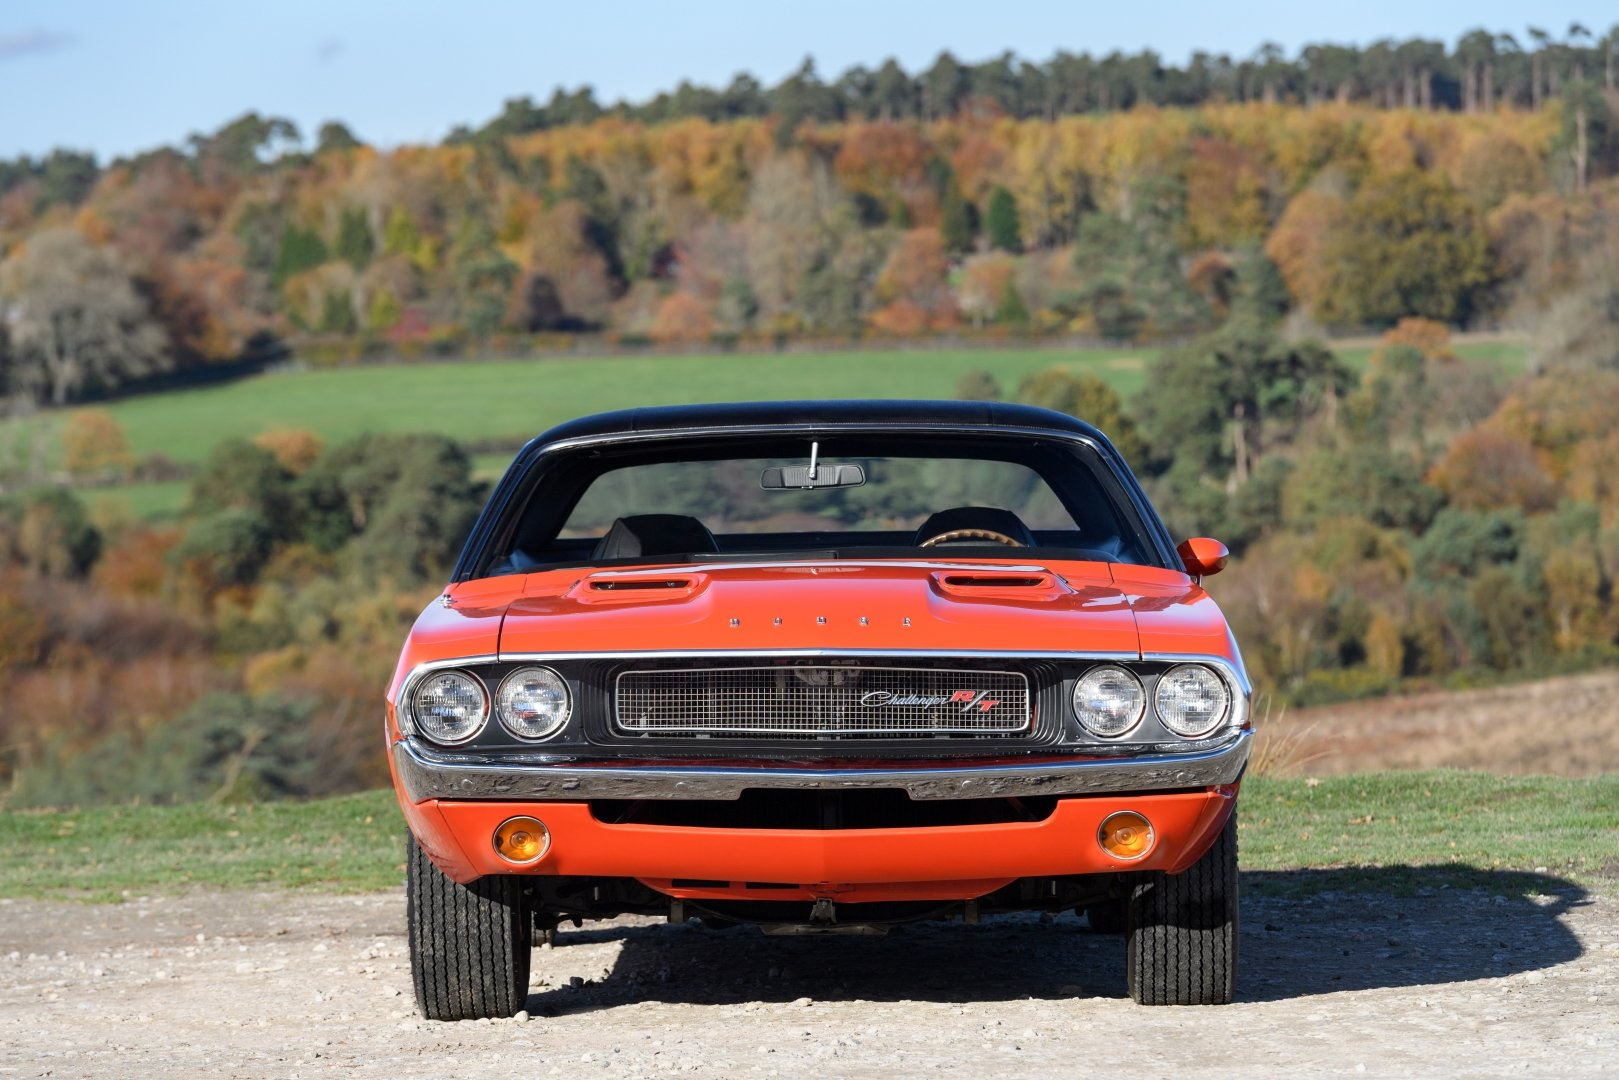 1970 Dodge Challenger RT 426 'HEMI' For Sale (picture 2 of 12)